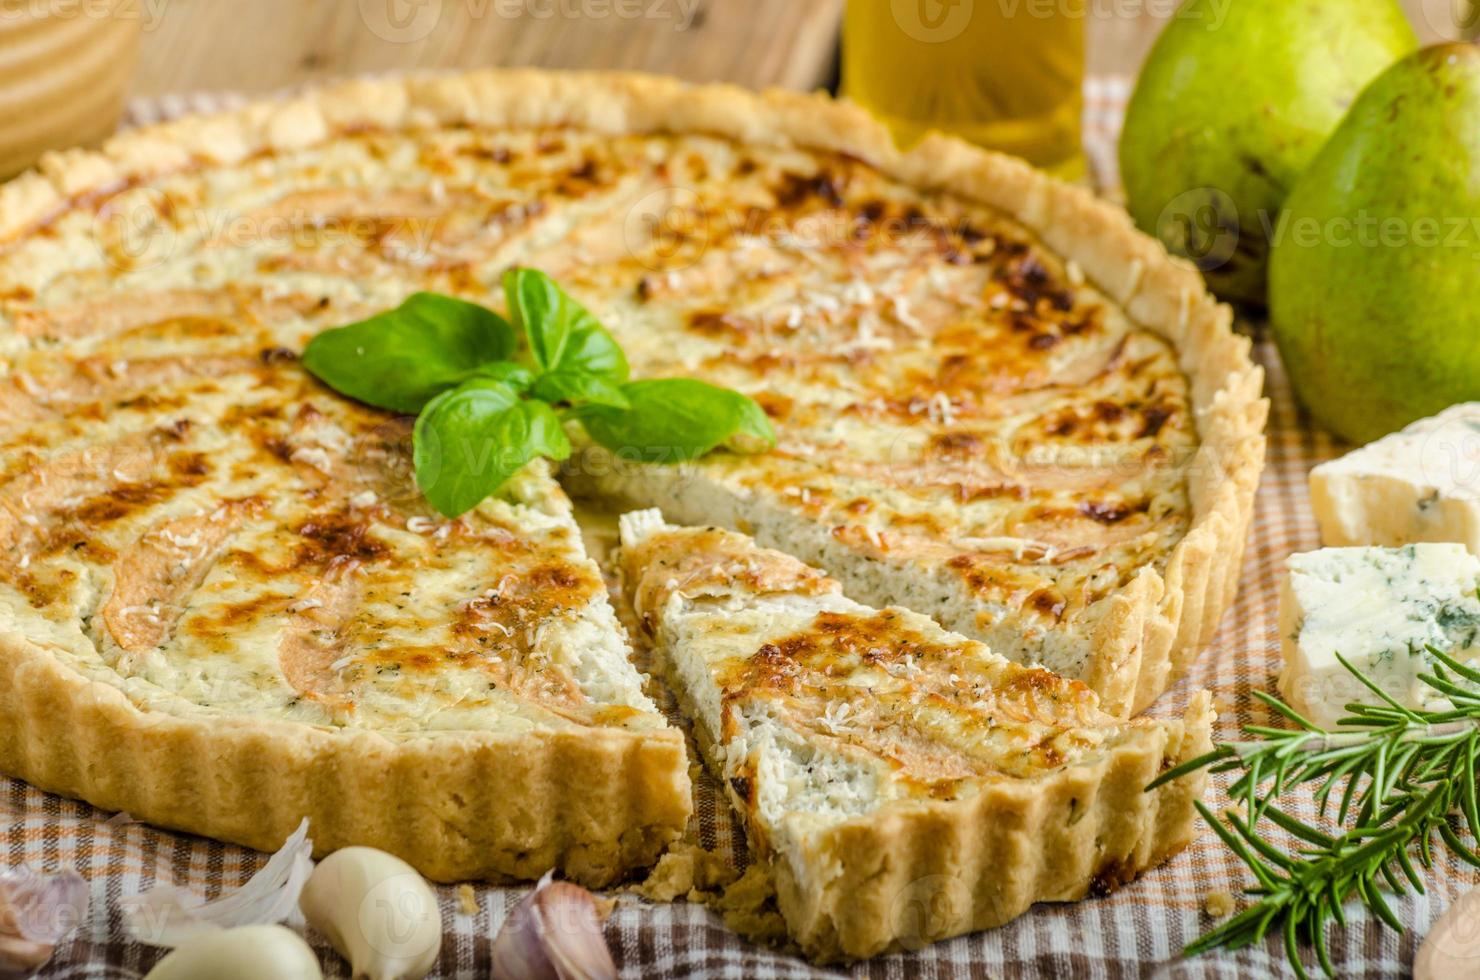 French quiche stuffed cheese and pears photo